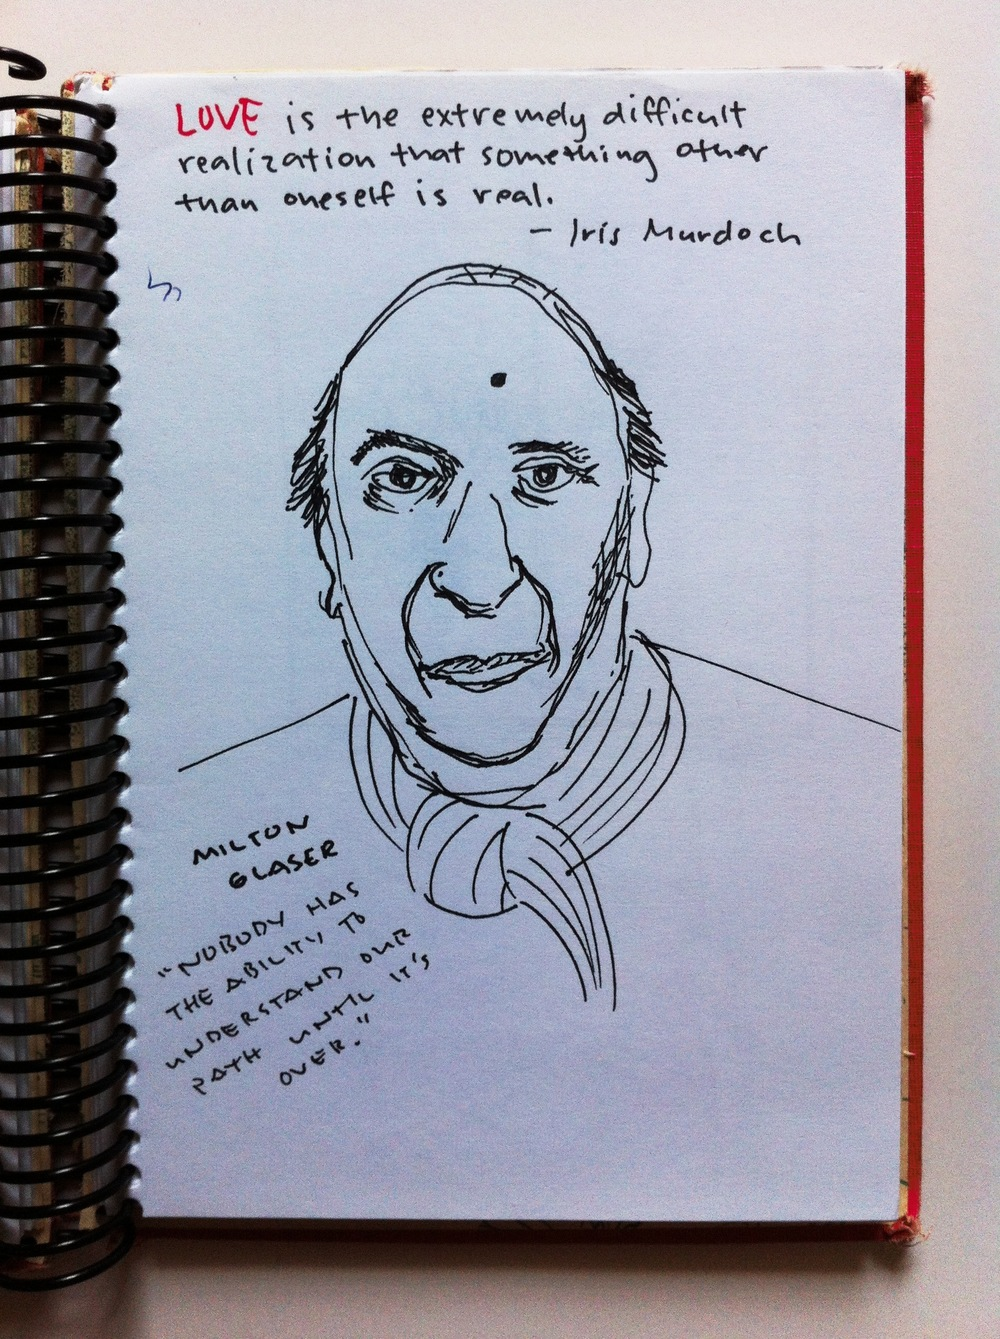 a poorly rendered sketch of milton glaser, graphic designer extraordinaire